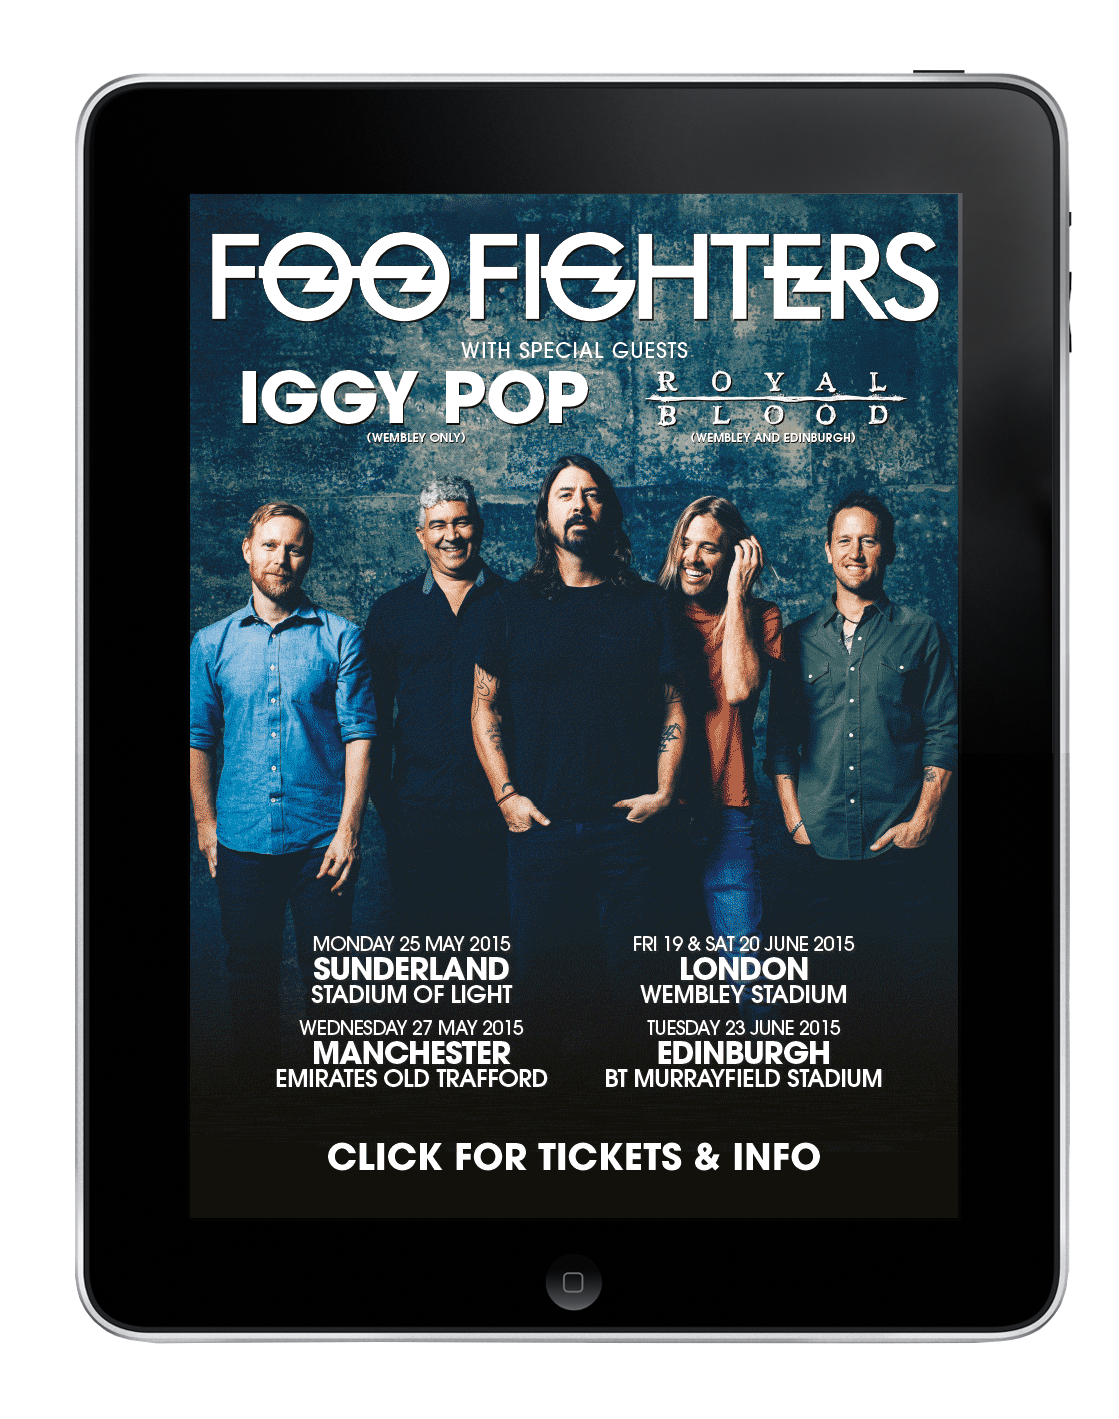 FooFighter768x1024